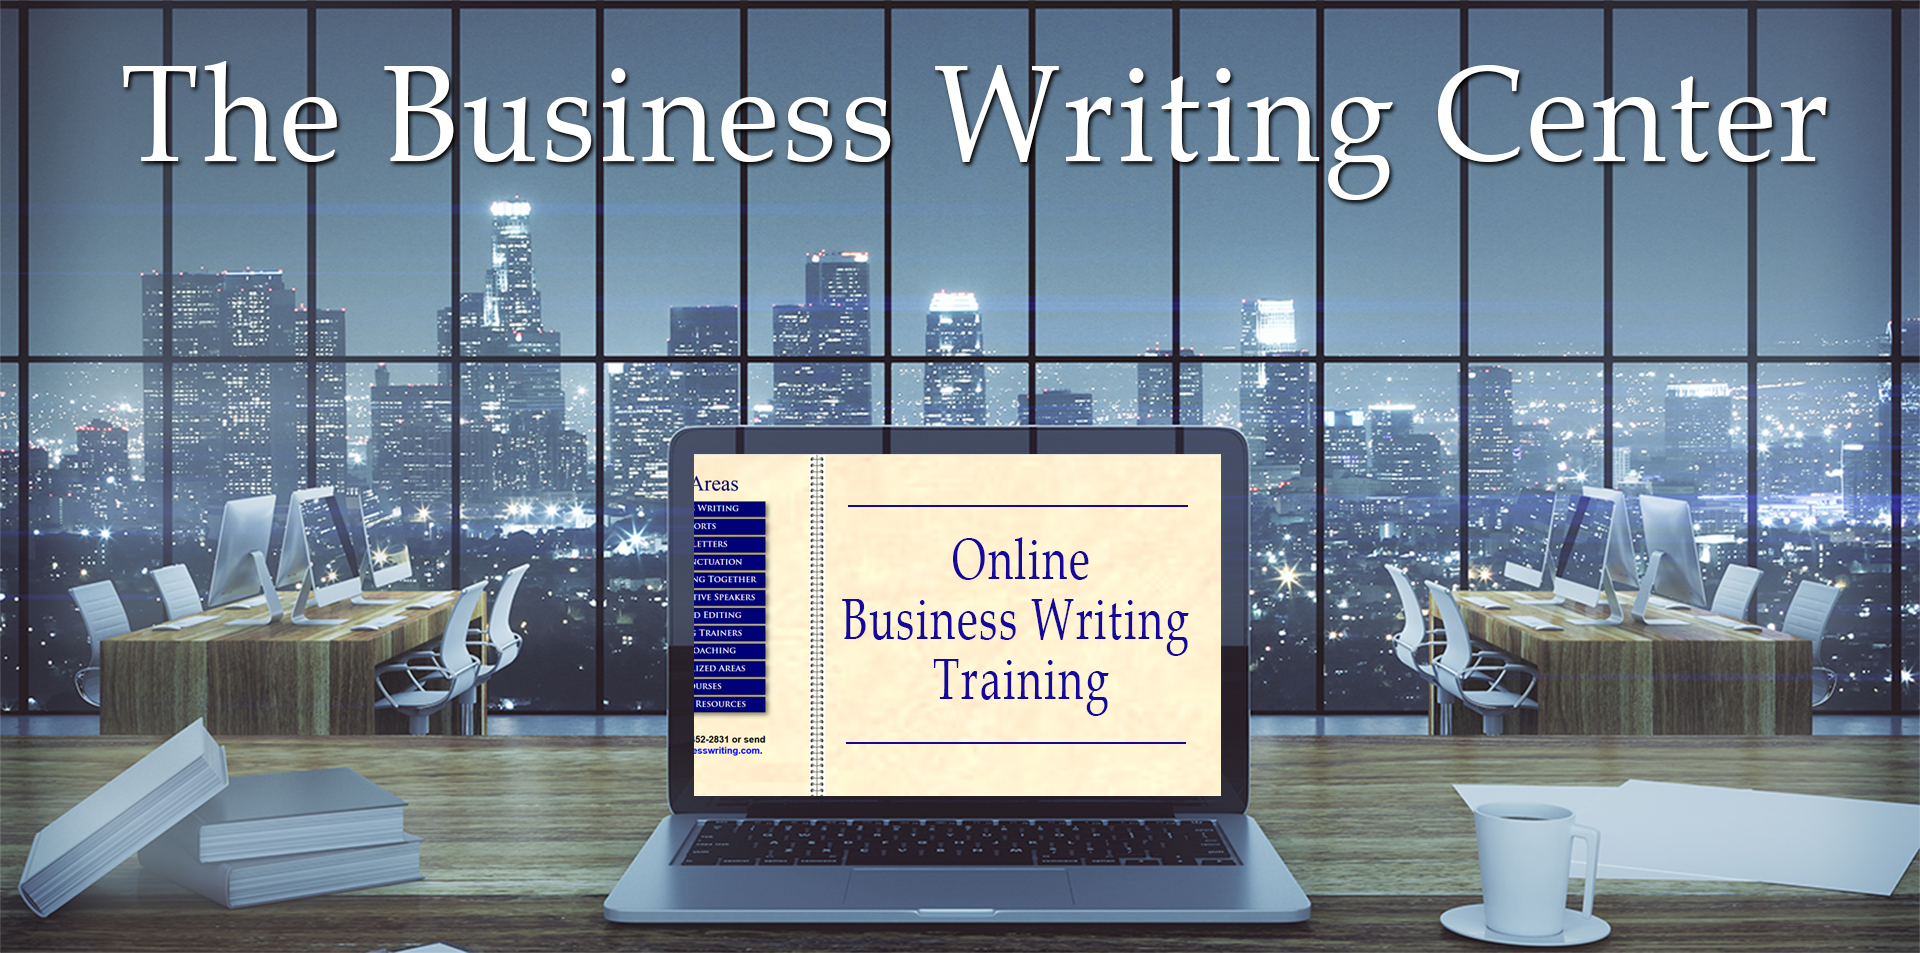 Effective business writing courses and business writing training fandeluxe Gallery